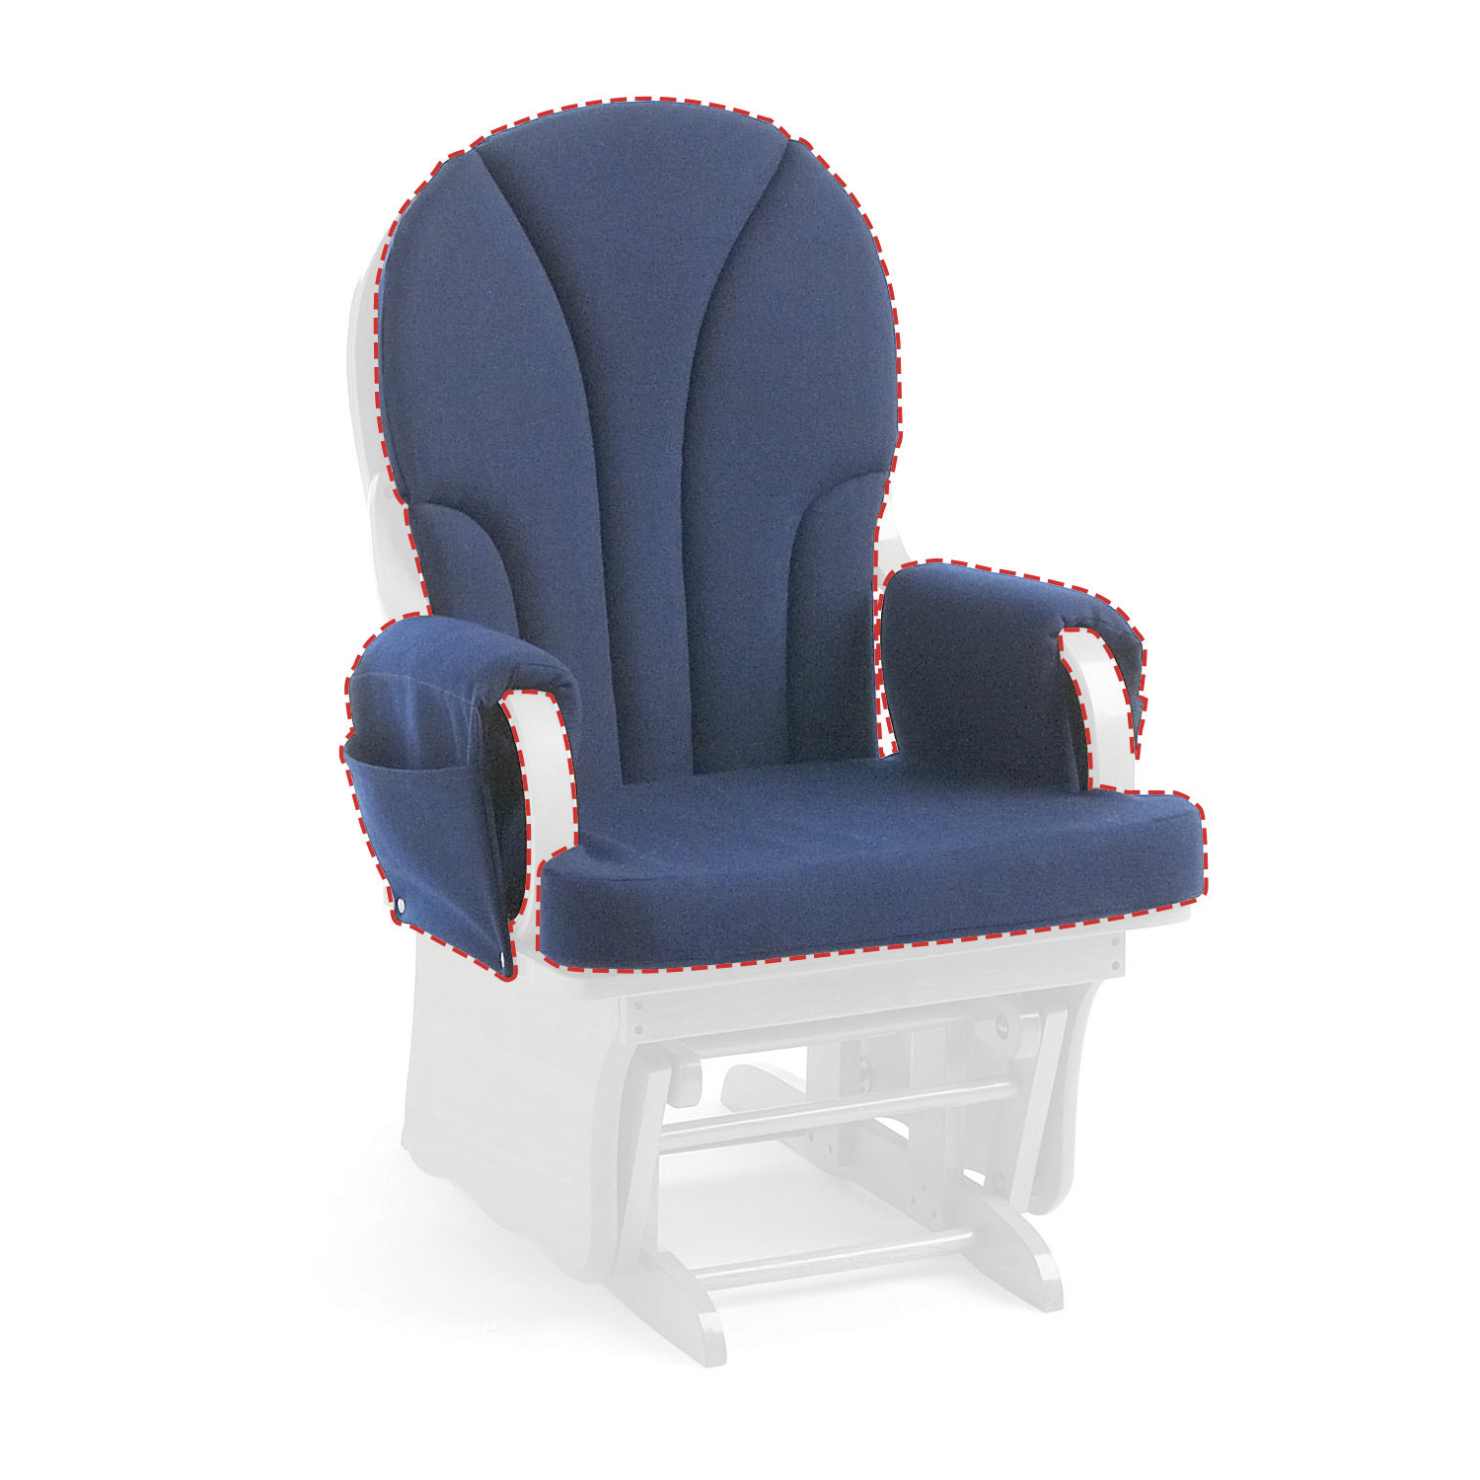 Katrina Blue Swivel Glider Chairs Intended For 2019 Foundations Replacement Cushion, Blue, For Use With Lullaby Glider (Gallery 3 of 20)